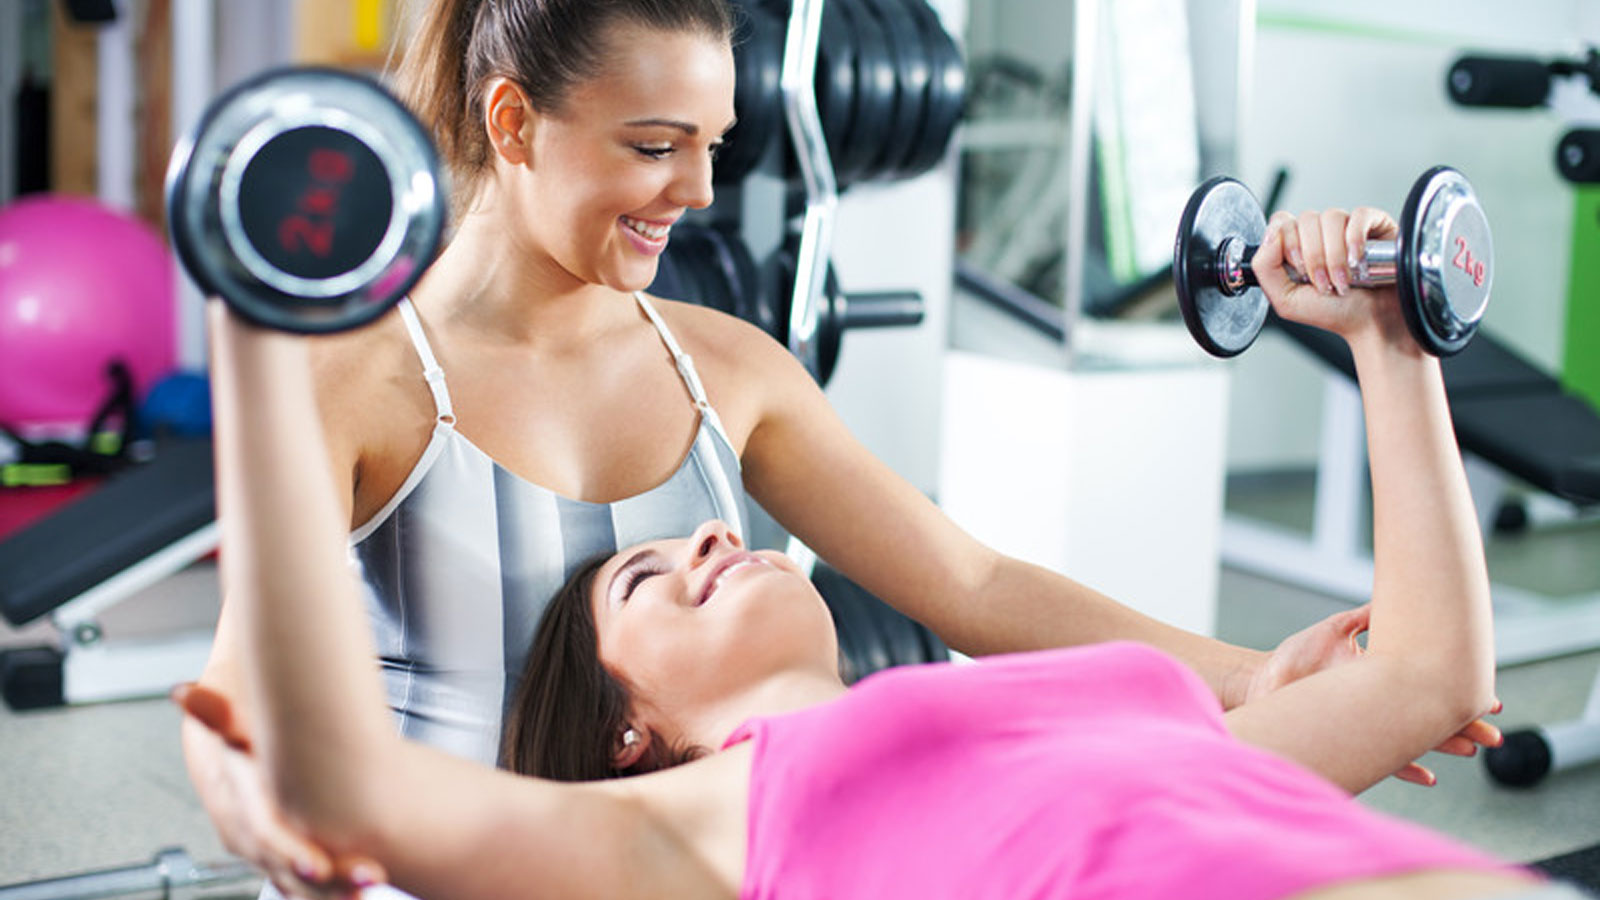 Find a personal trainer in your area home